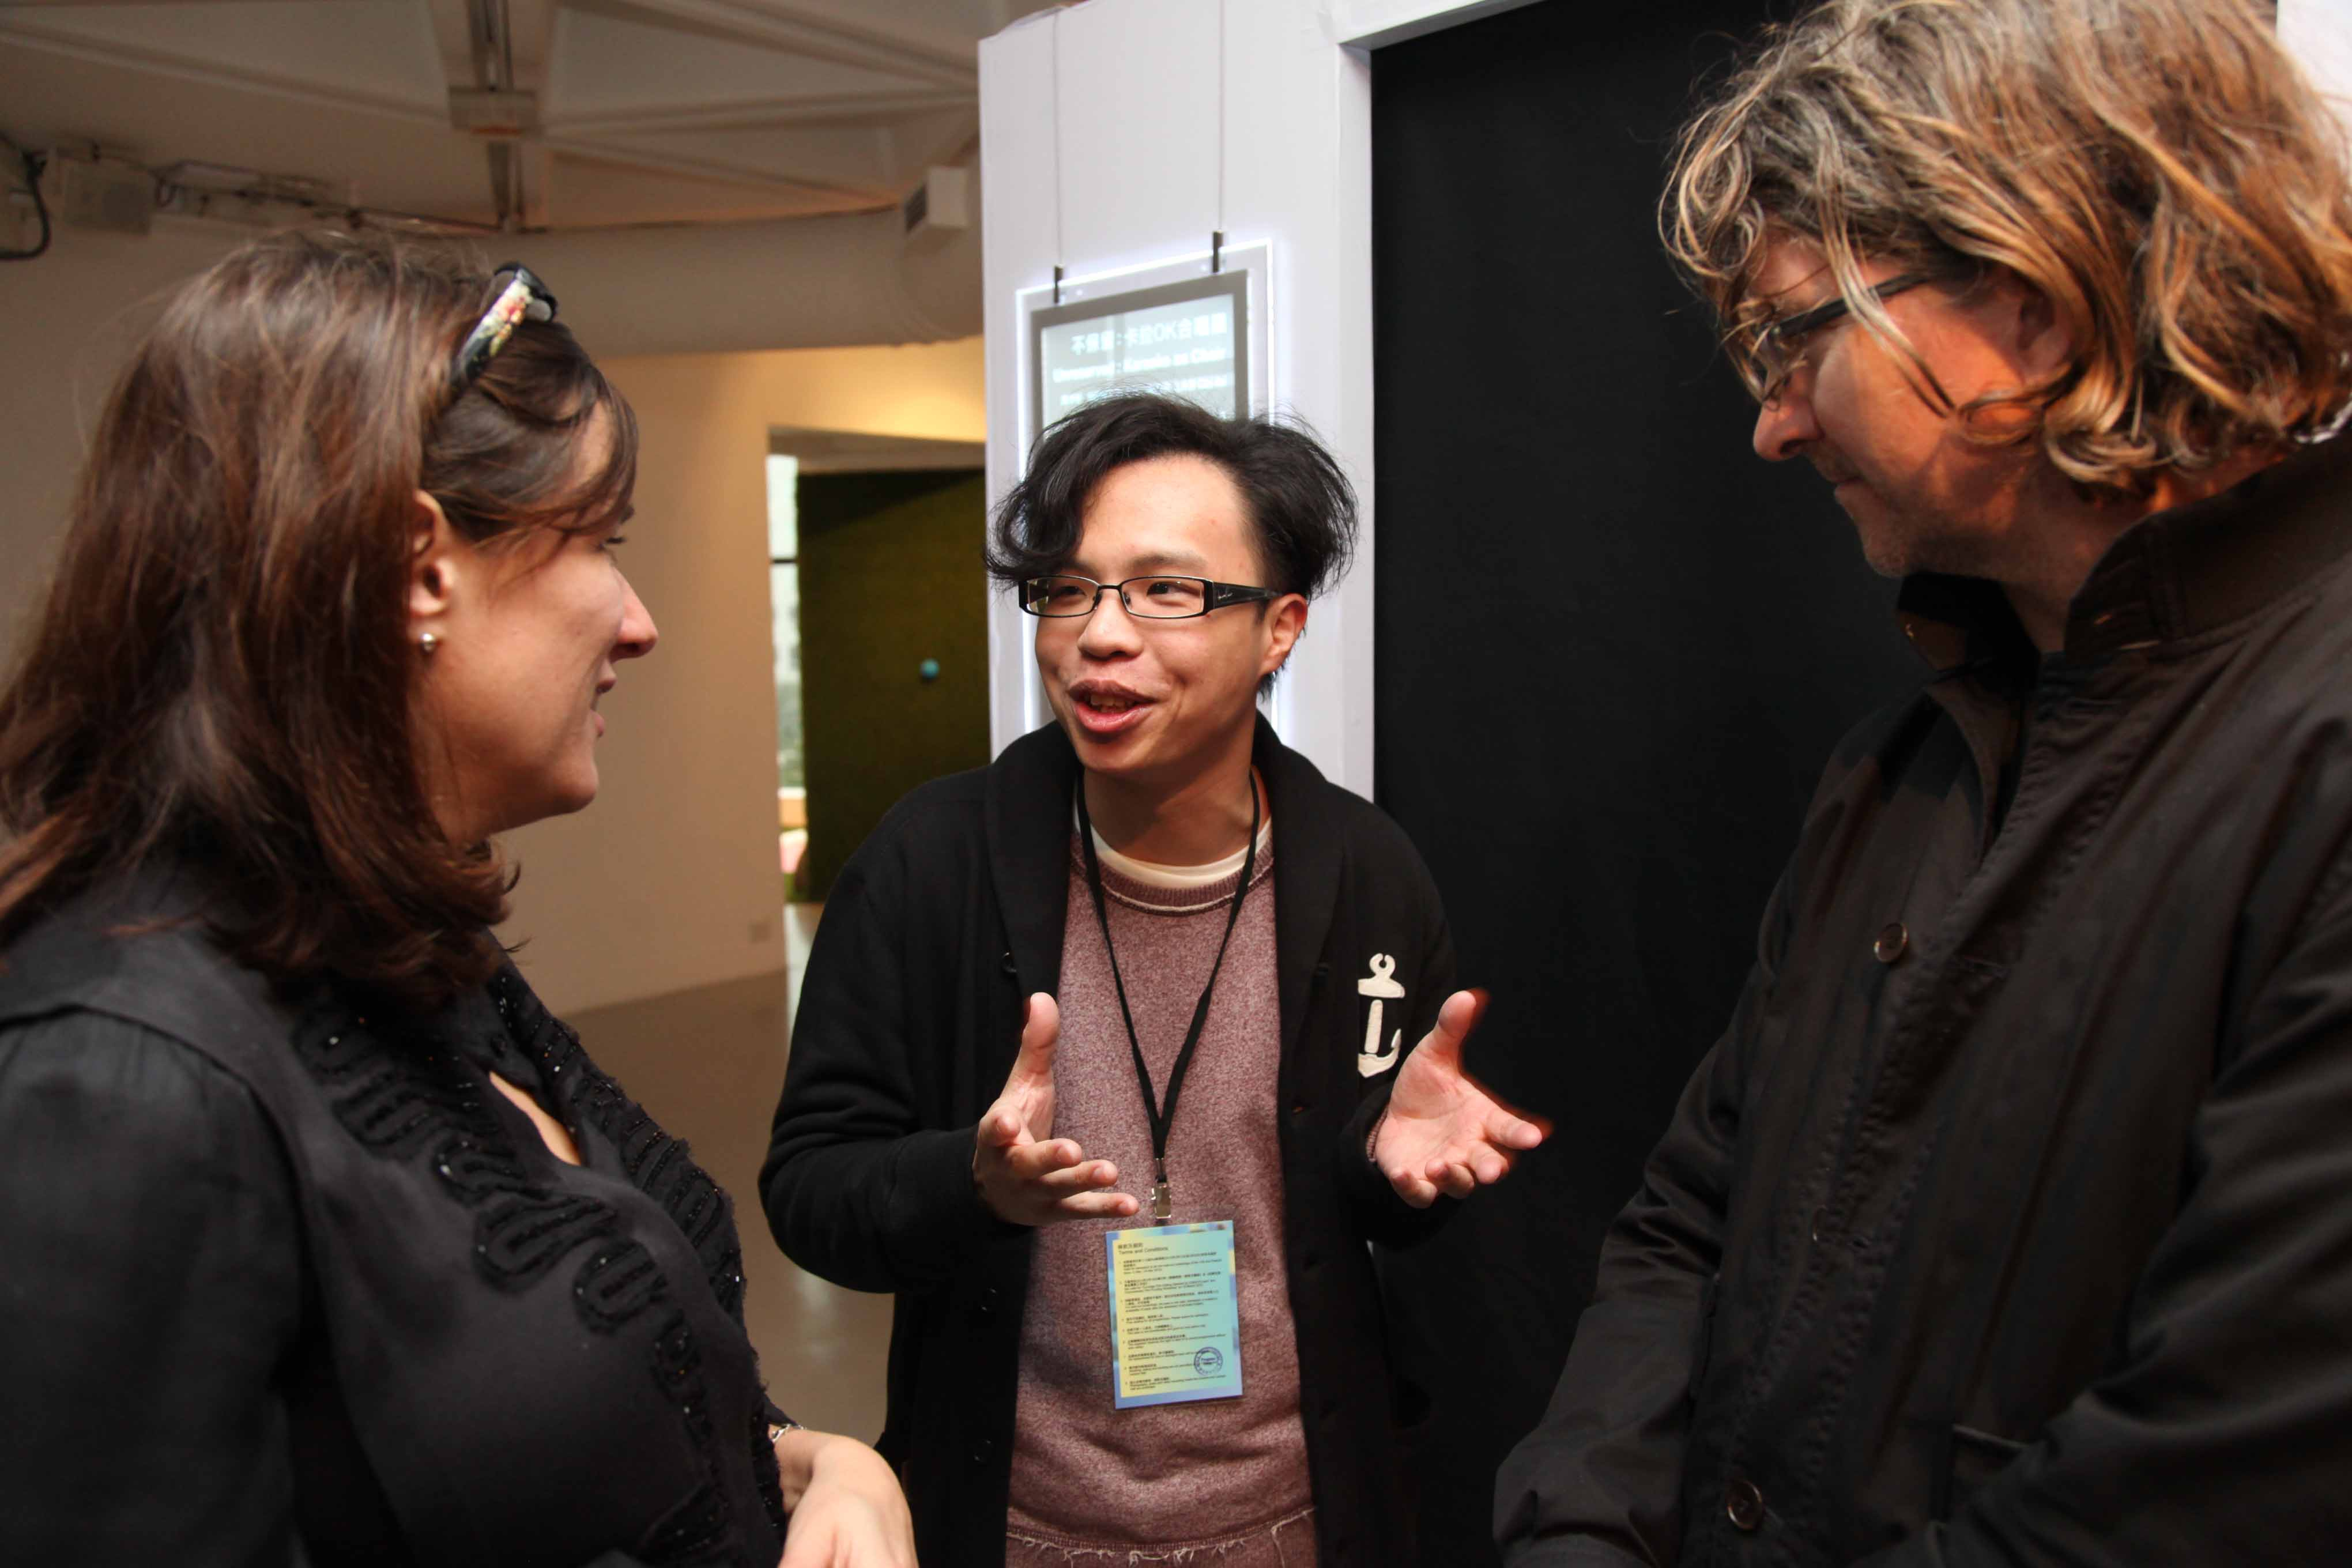 Jennifer & Kevin McCoy was having dialogue with one of the finalists, Sampson Wong.